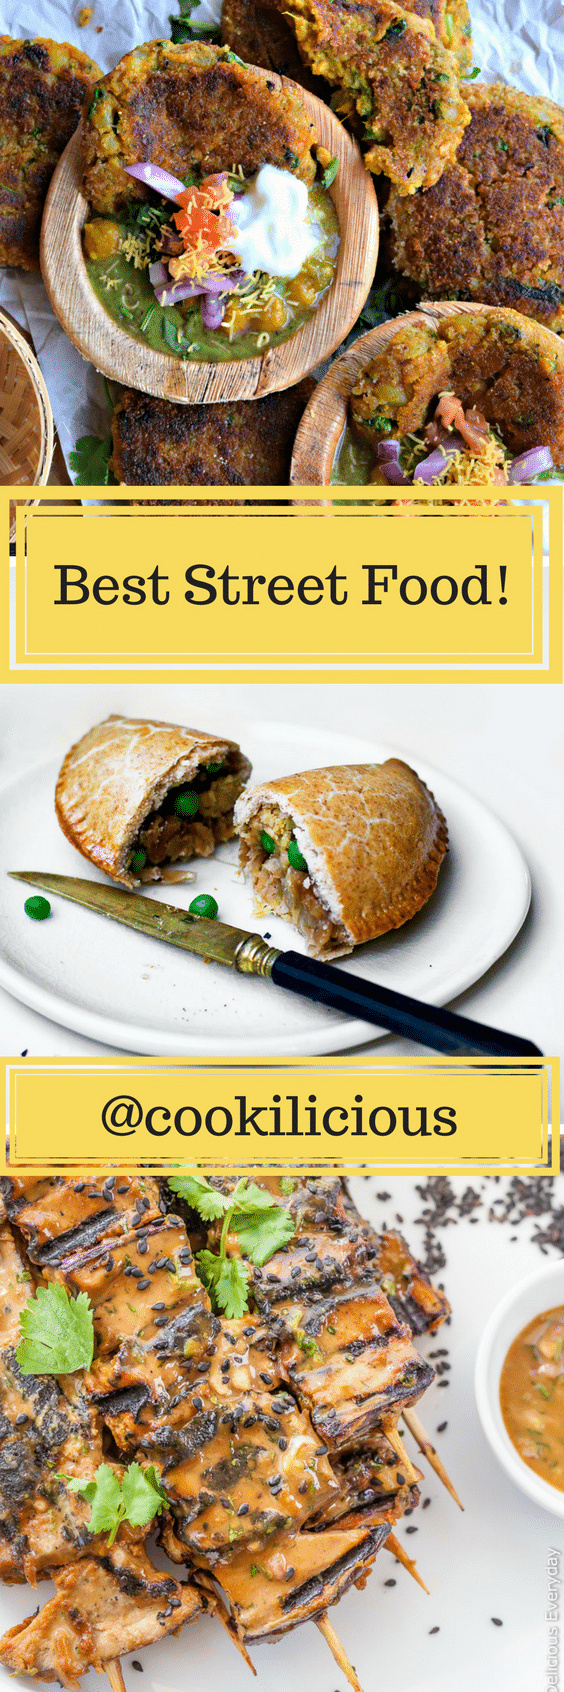 Here is a roundup of some unusual and some 14 popular vegetarian/vegan street food from around the world. These recipes will make your mouth water and will tempt you to make it in your own kitchen! Try them all out today. via @cookiliciousveg